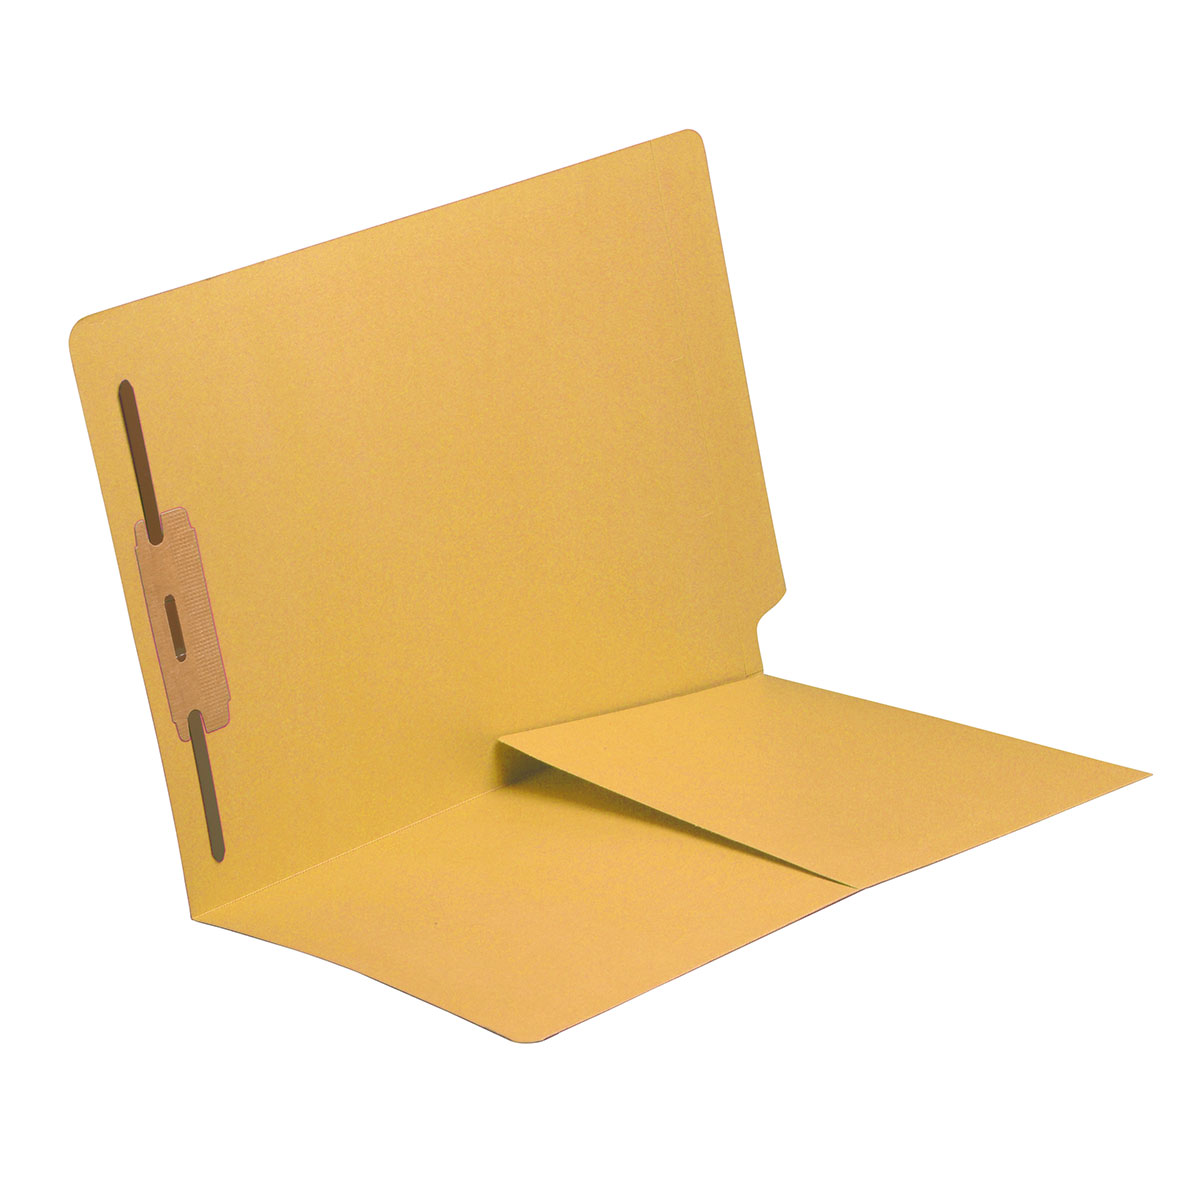 S-9010-YLW - 14 pt Yellow Folders, Full Cut End Tab, Letter Size, 1/2 Pocket Inside Front, Fastener Pos #1 (Box of 50)